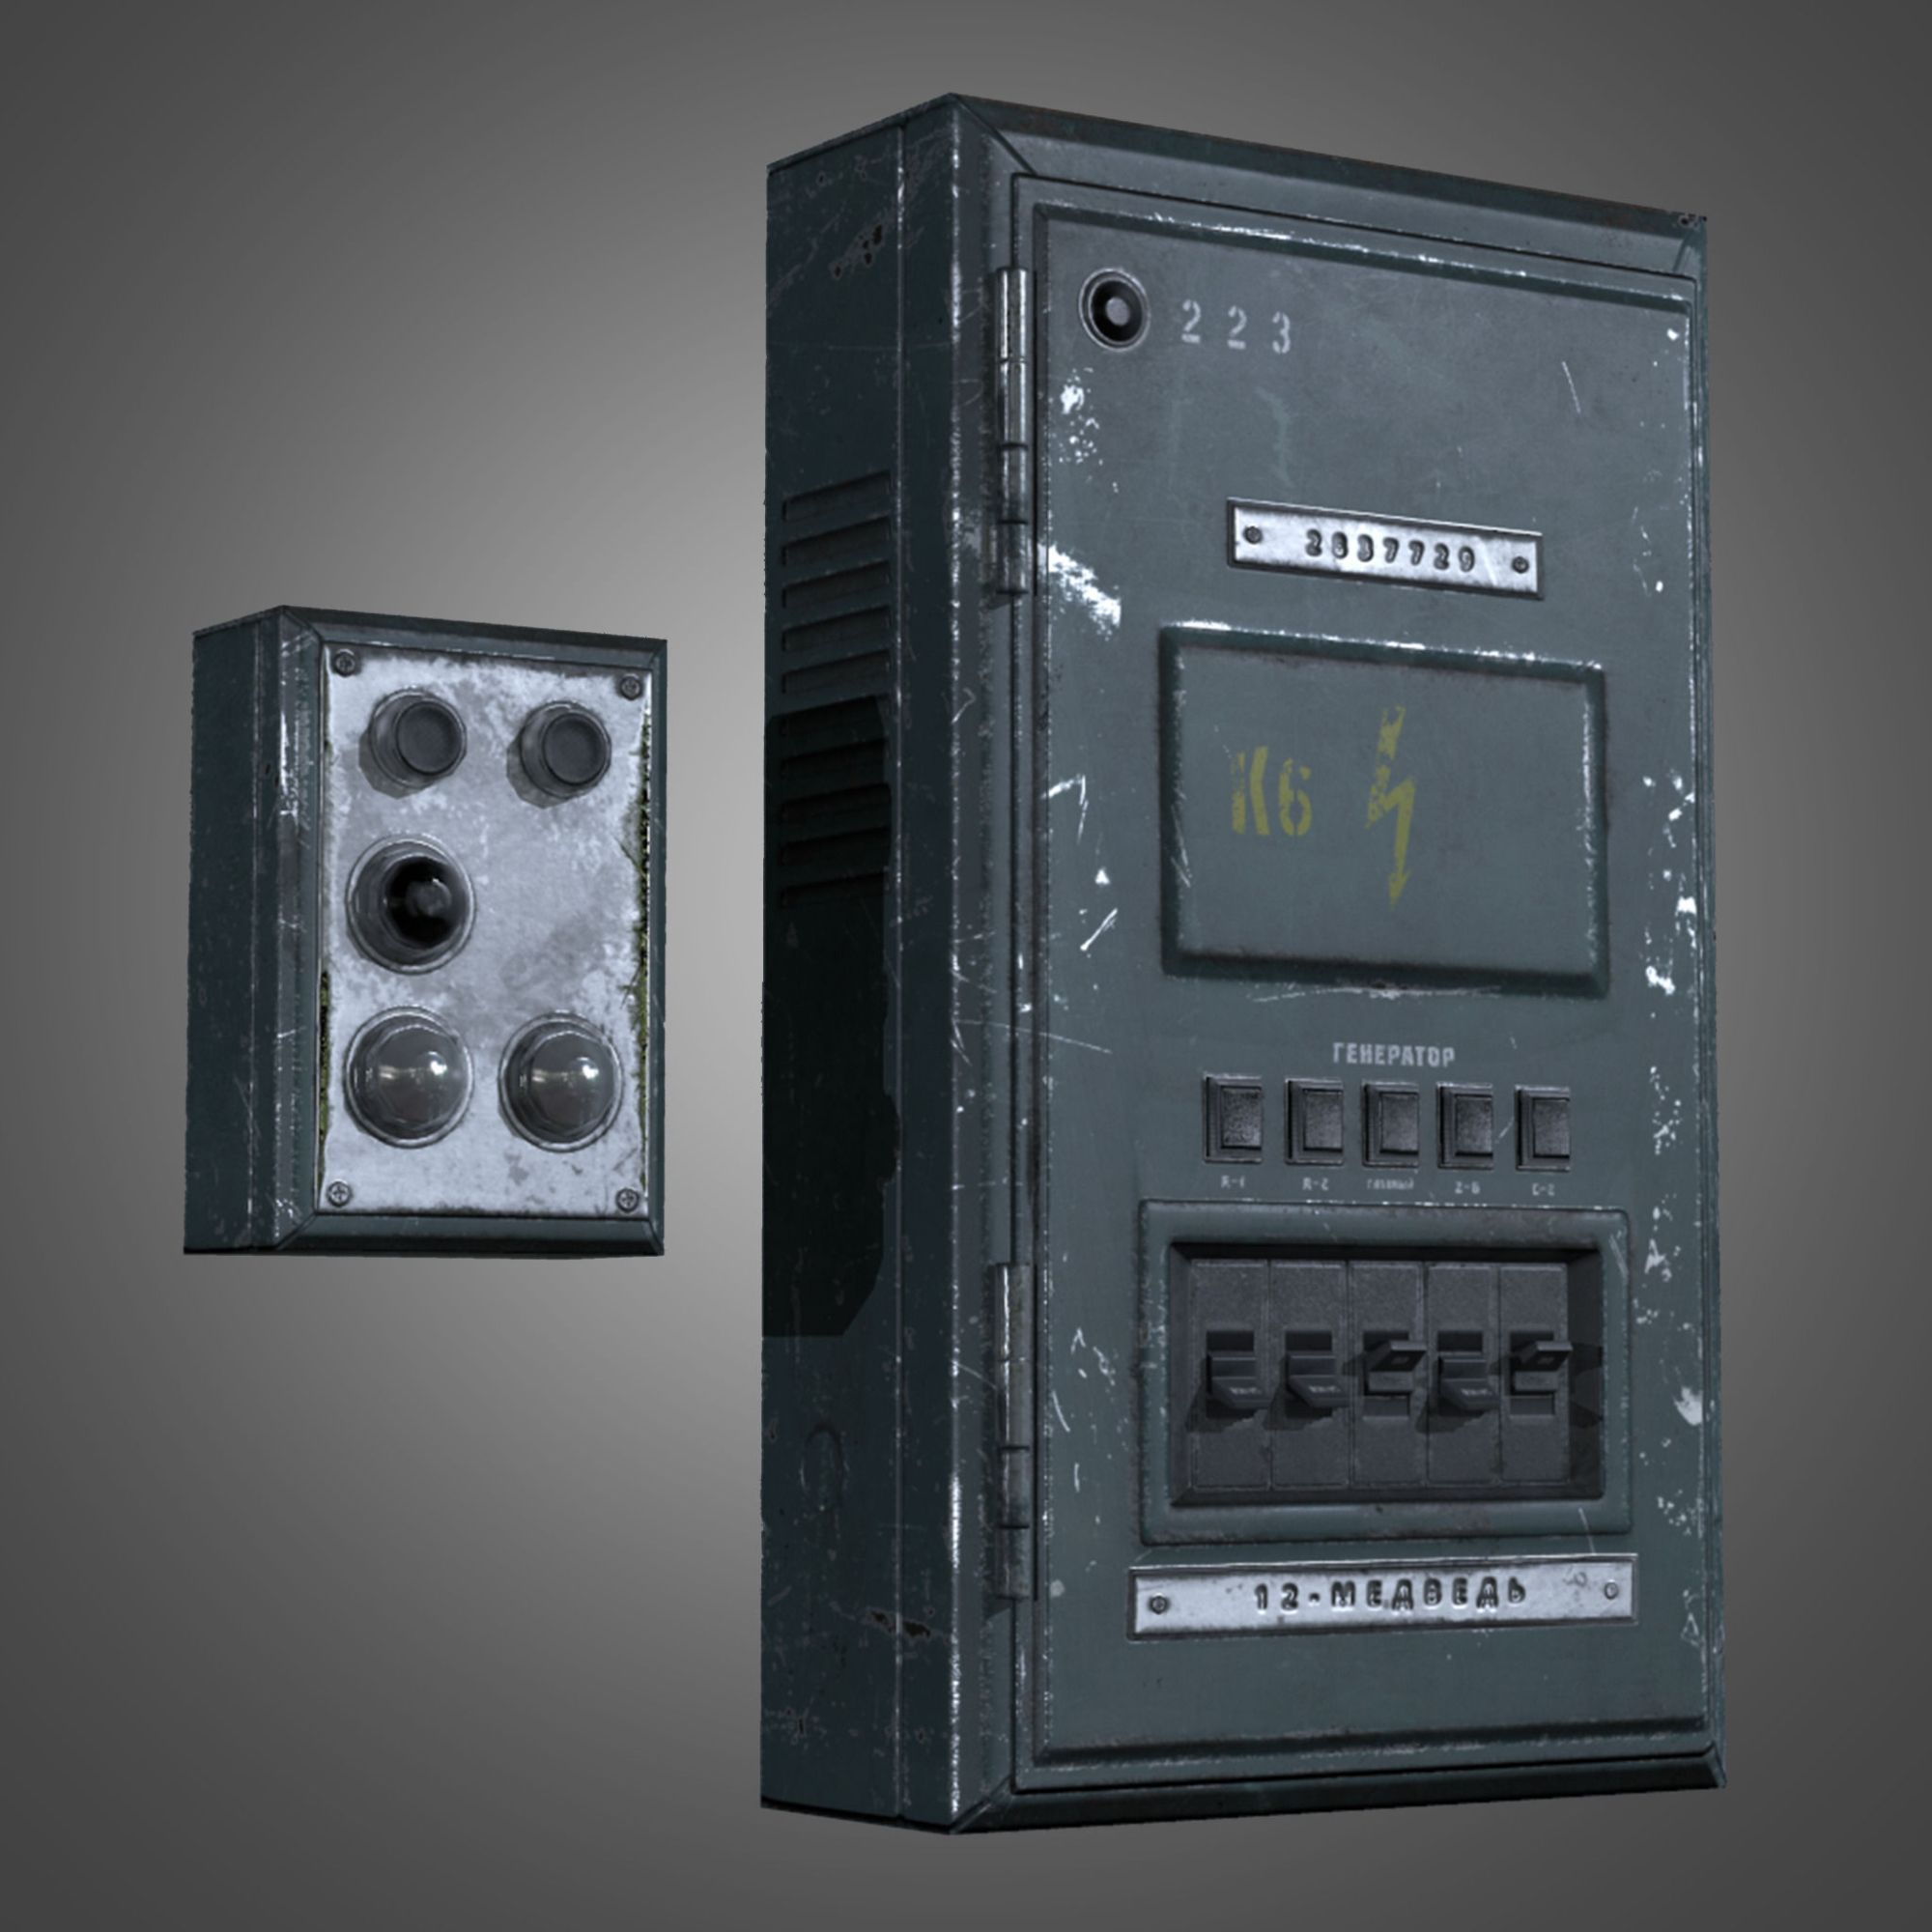 hight resolution of industrial fuse box set pbr game ready low poly 3d model